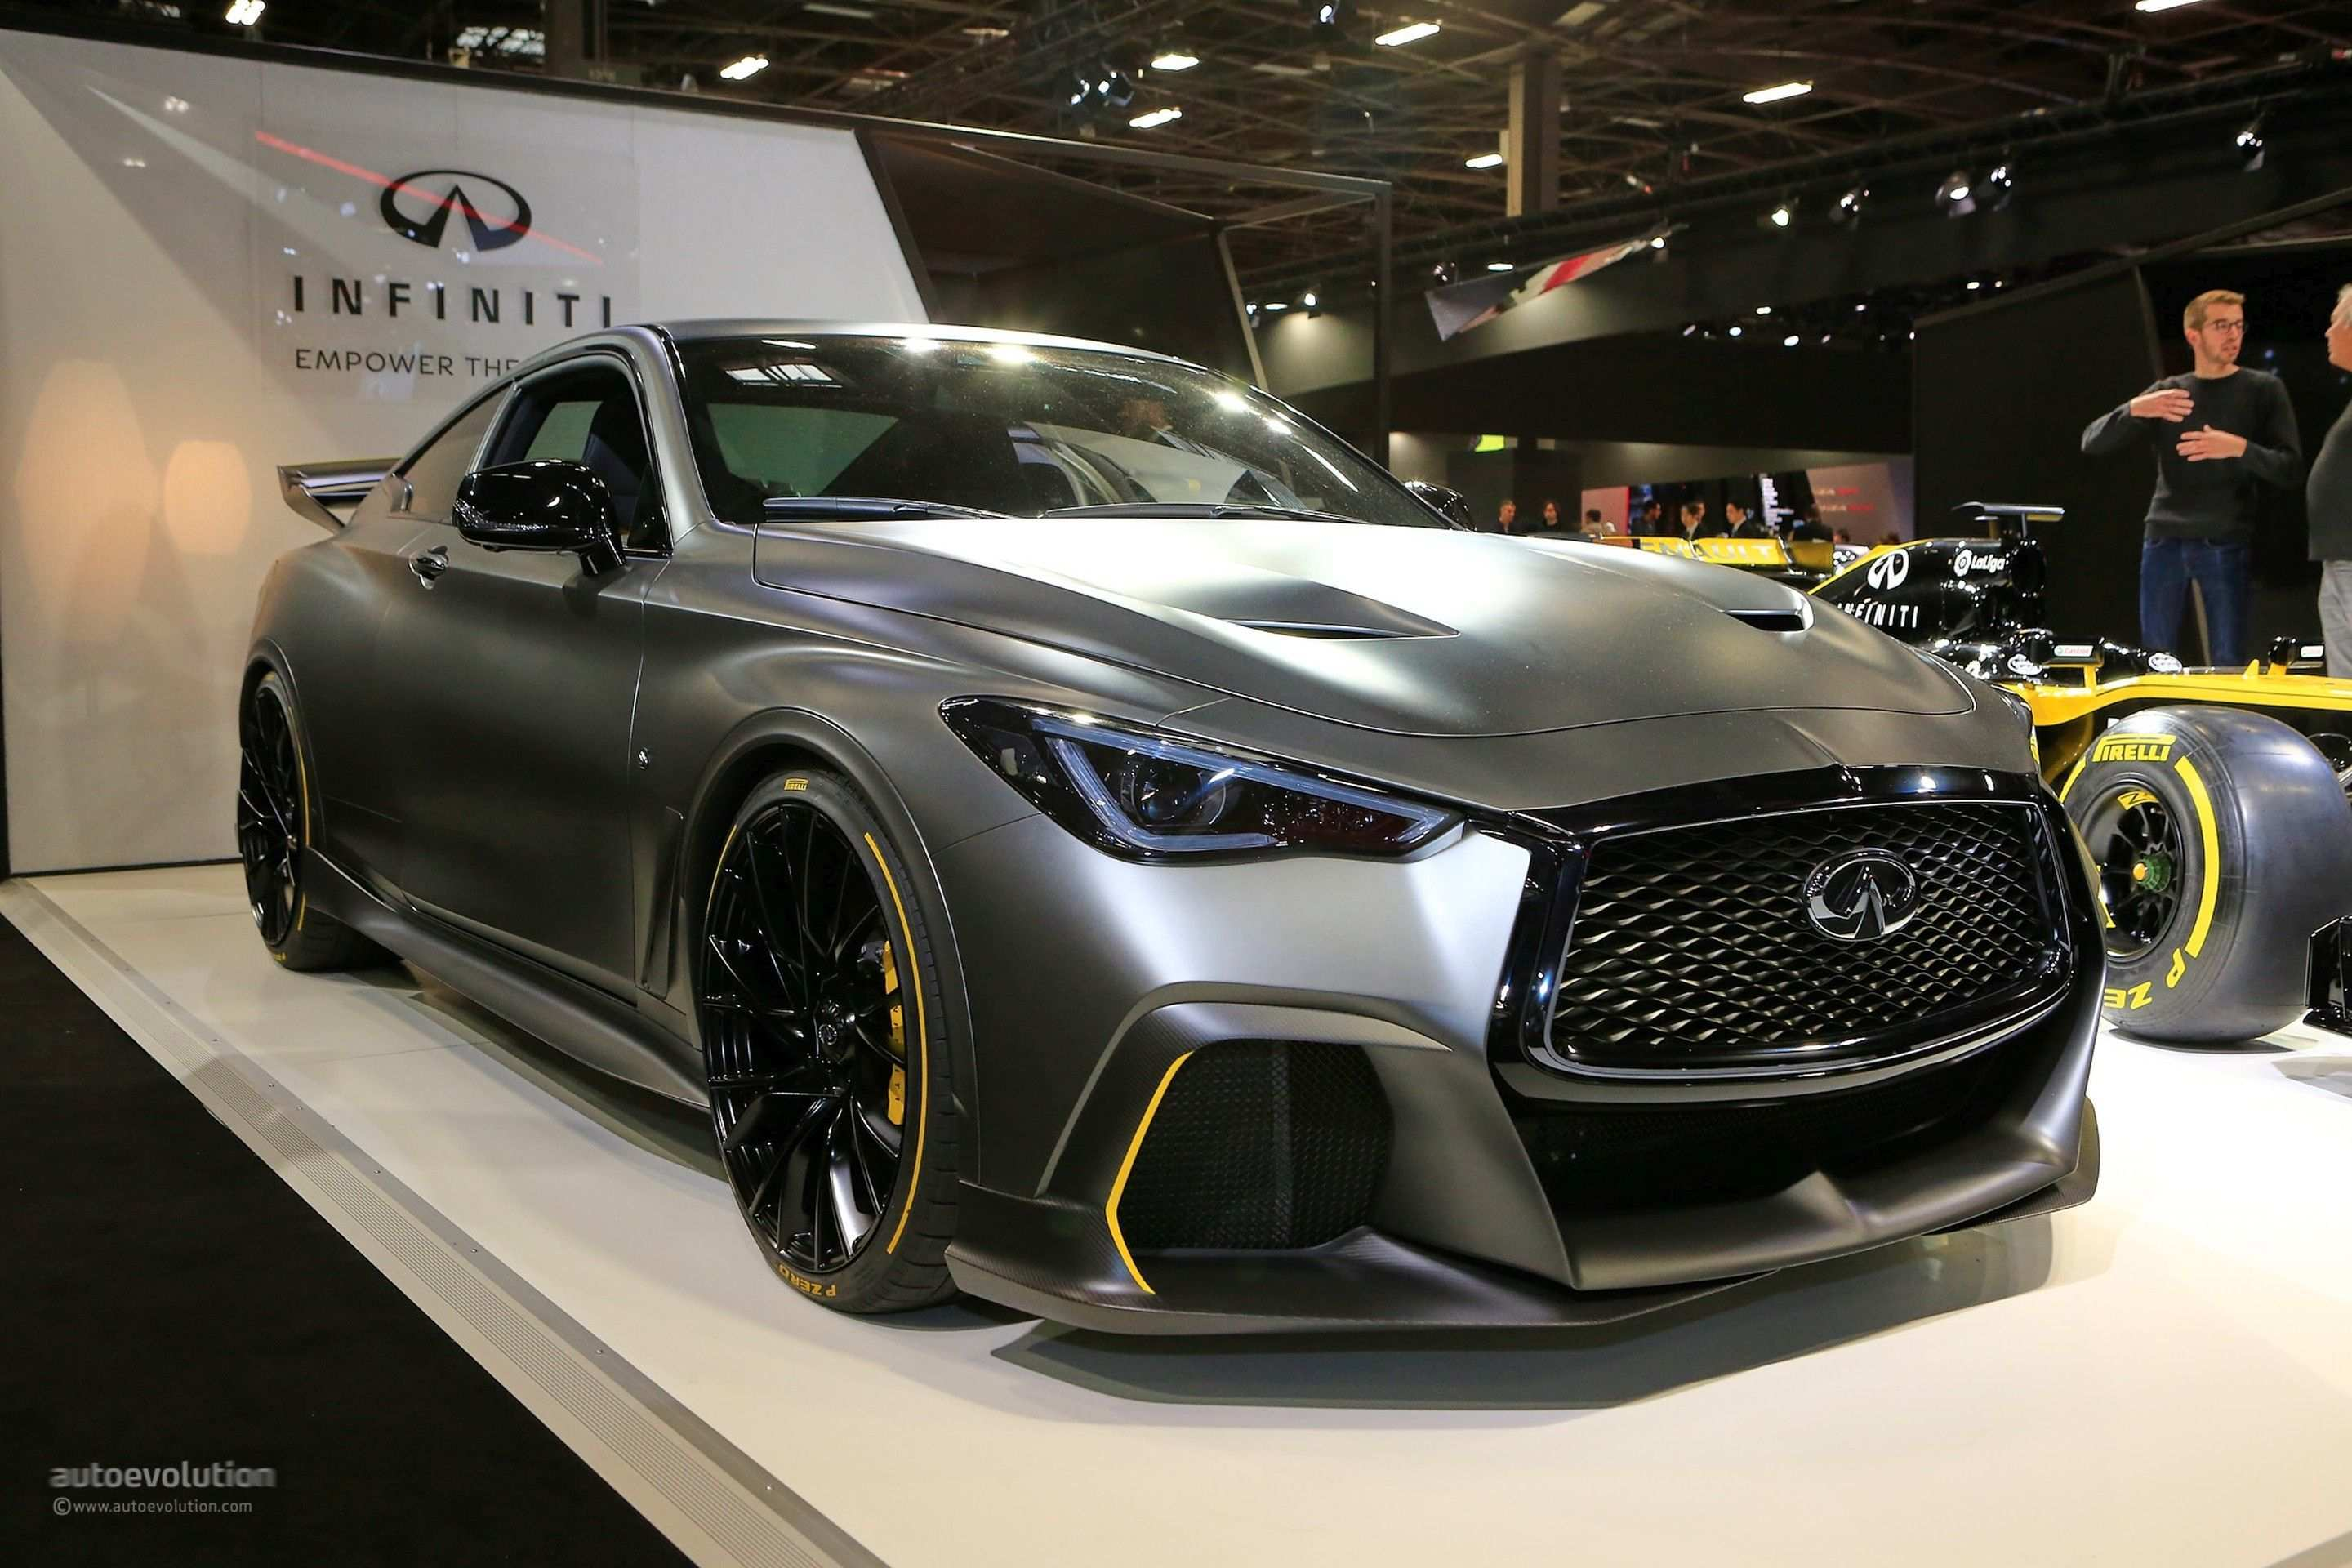 31 All New Infiniti Q60 2020 Style with Infiniti Q60 2020